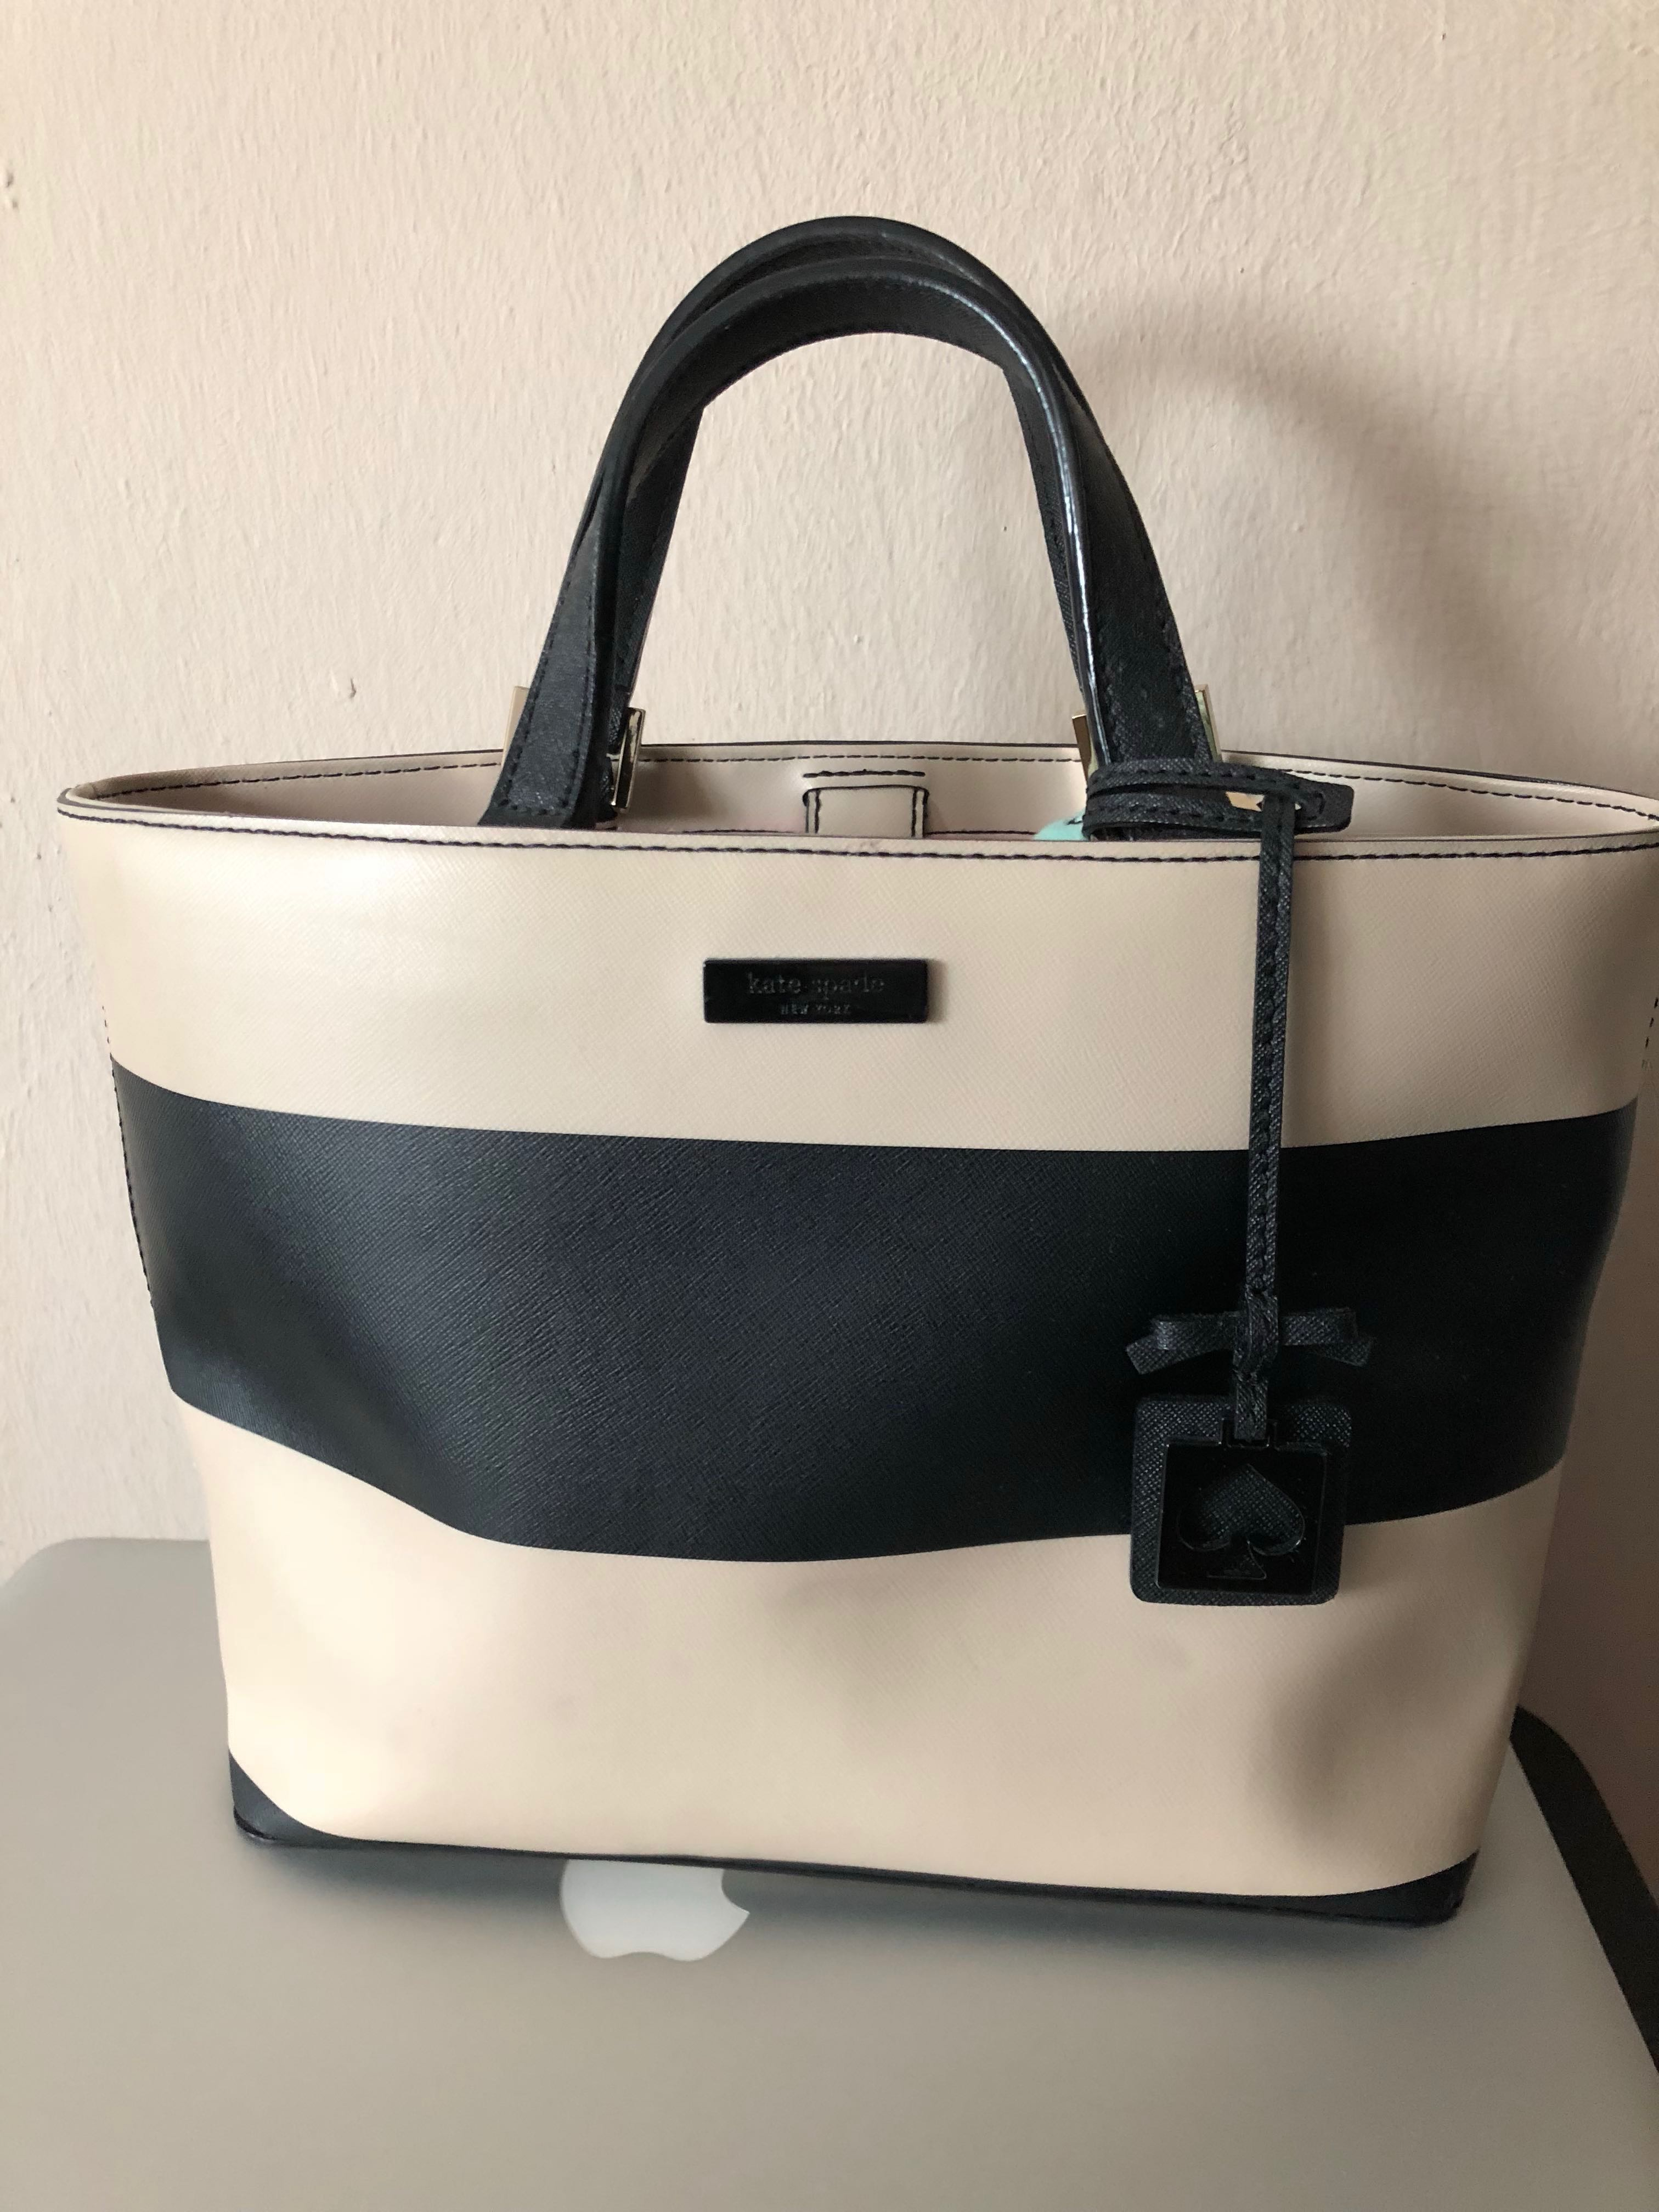 f4d48049682 Kate Spade Small Leather Handbag, Women's Fashion, Bags & Wallets ...